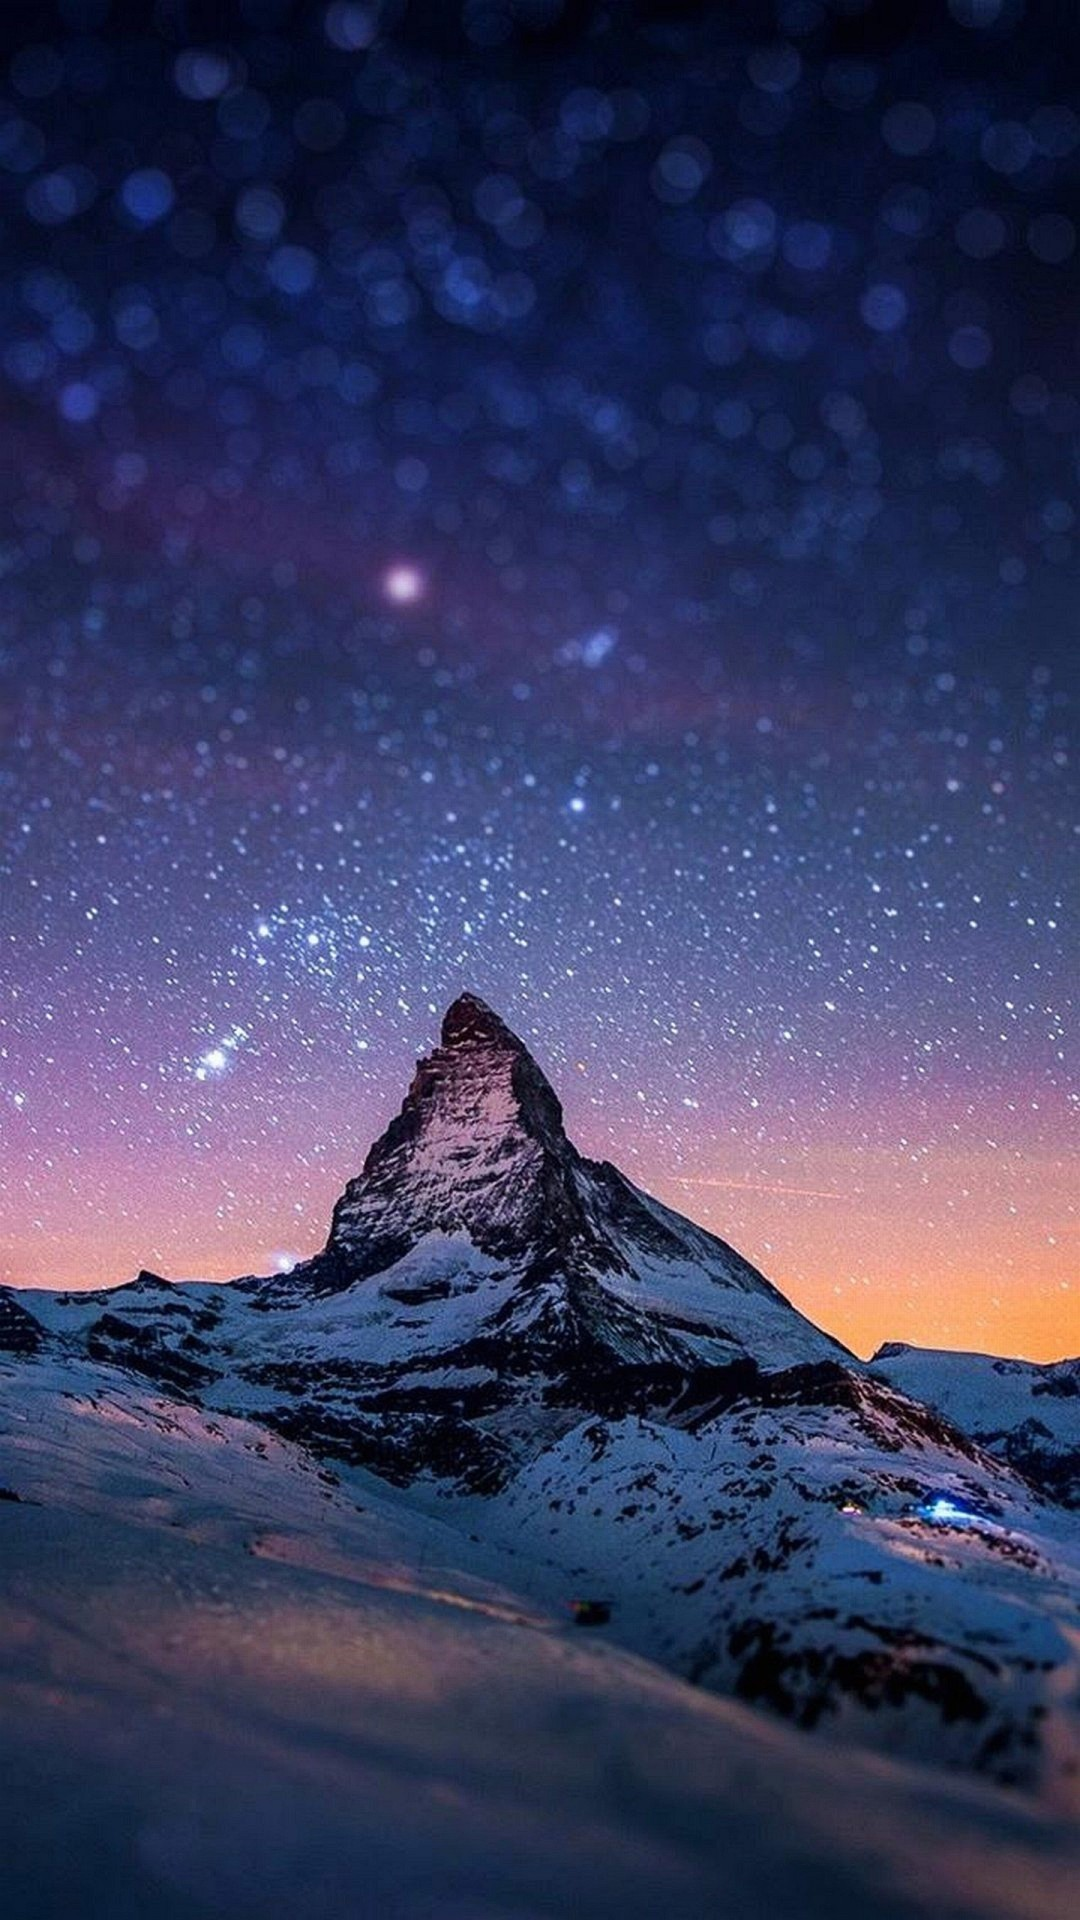 Top Wallpaper Night Iphone 7 - everest-with-the-stars-at-night-wallpaper-background-1080x1920  Best Photo Reference-475076.jpg